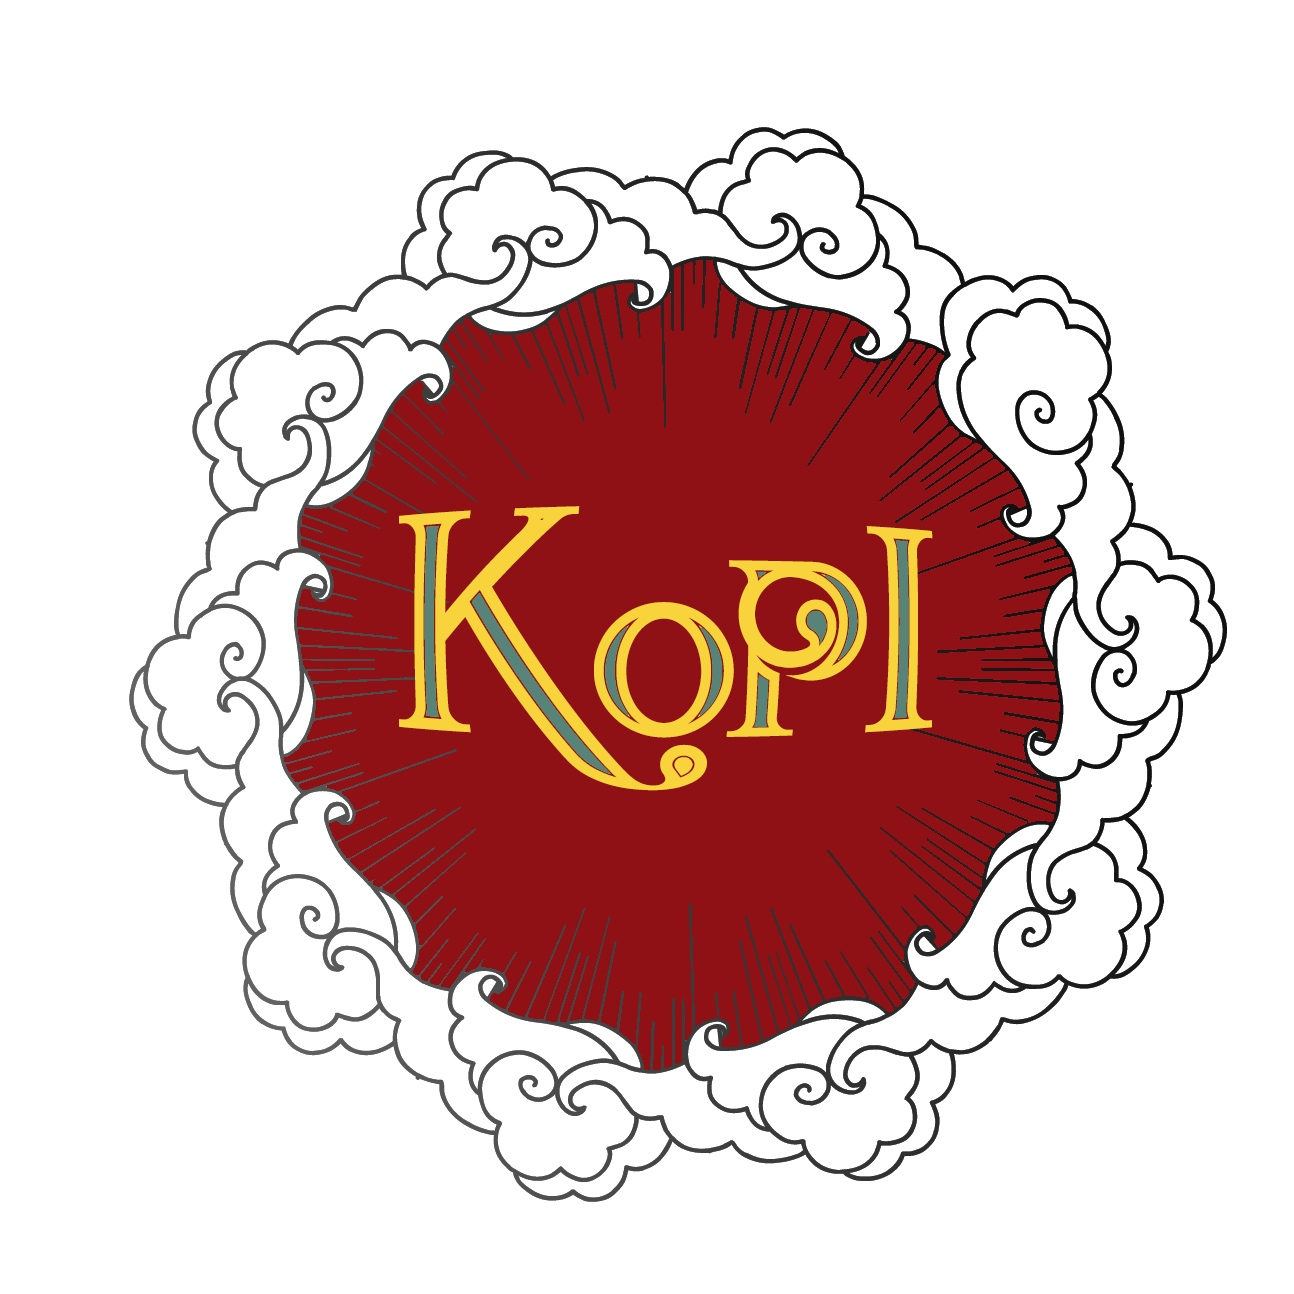 Kopi Coffee House